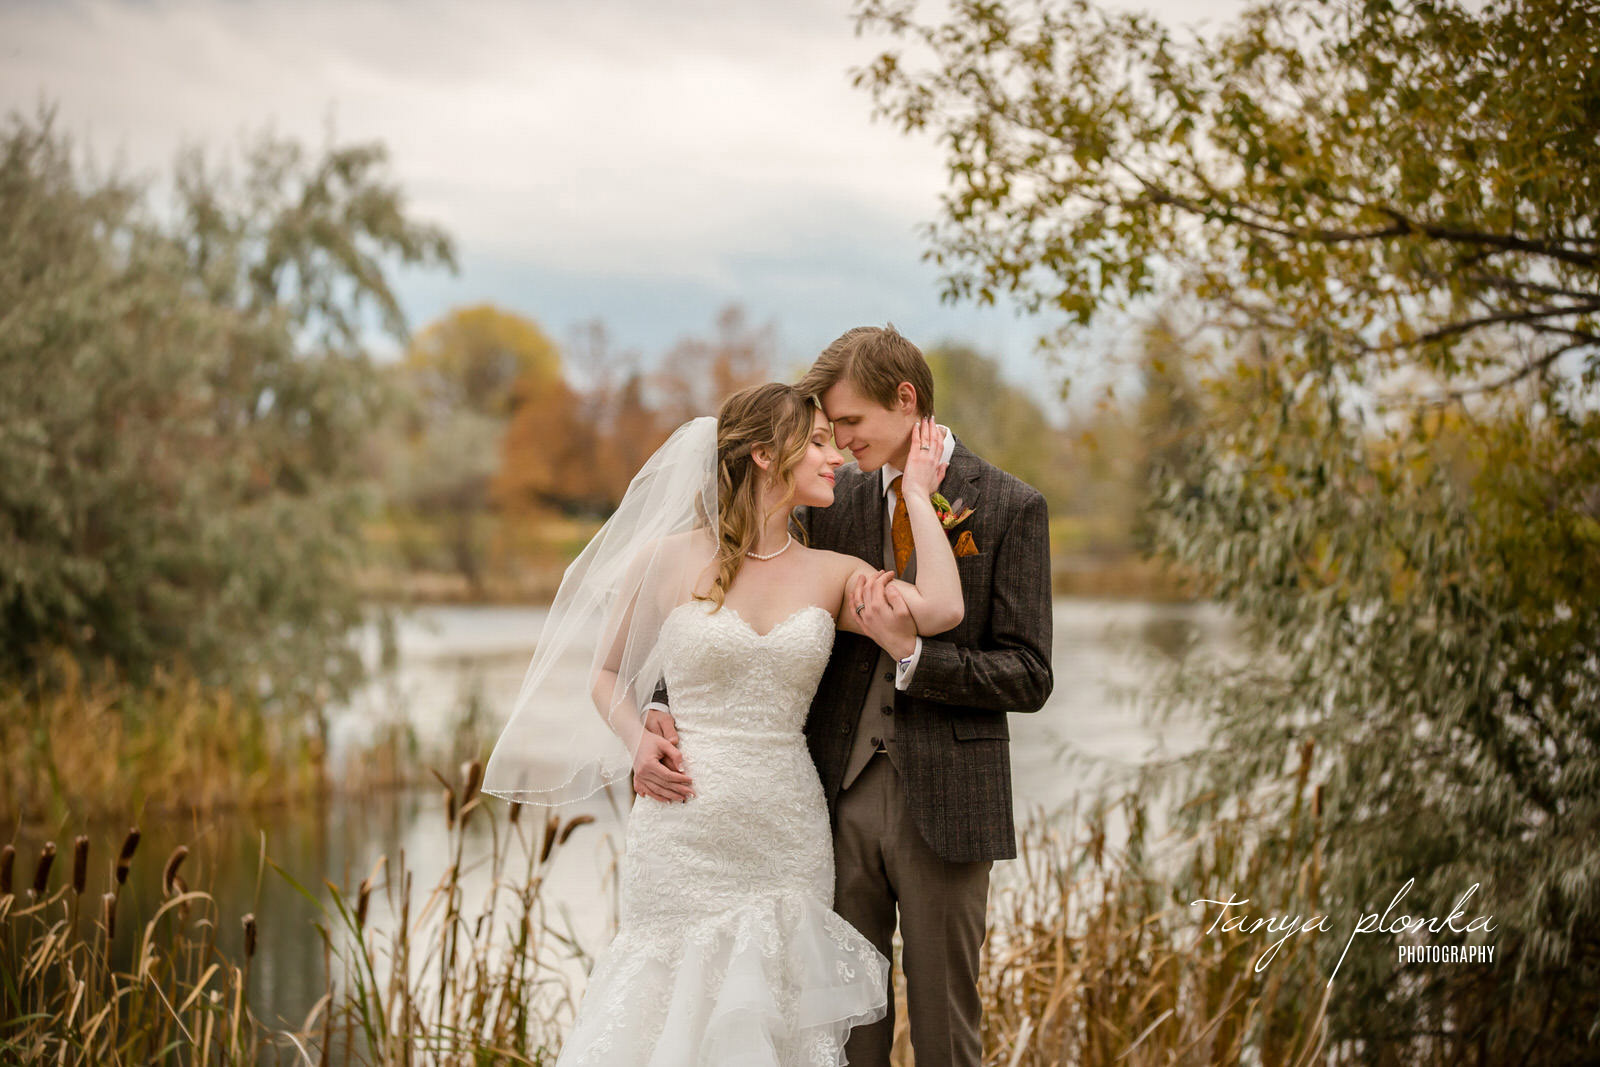 bride and groom embrace with eyes closed standing in front of autumn scene with Nicholas Sheran Lake out of focus in background